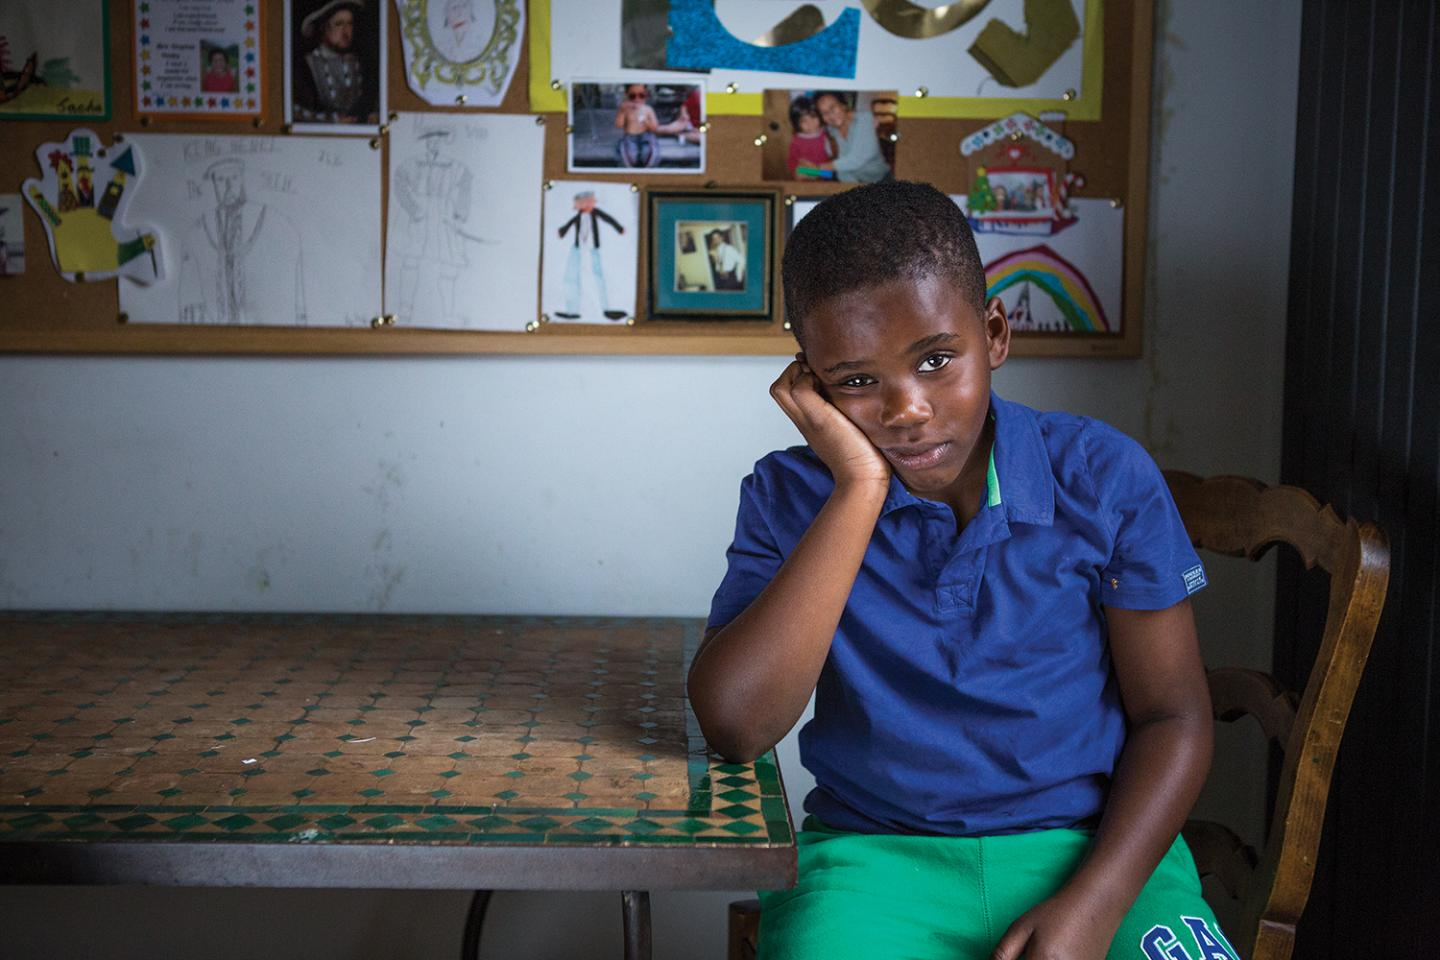 Young boy looking bored, leaning on a table